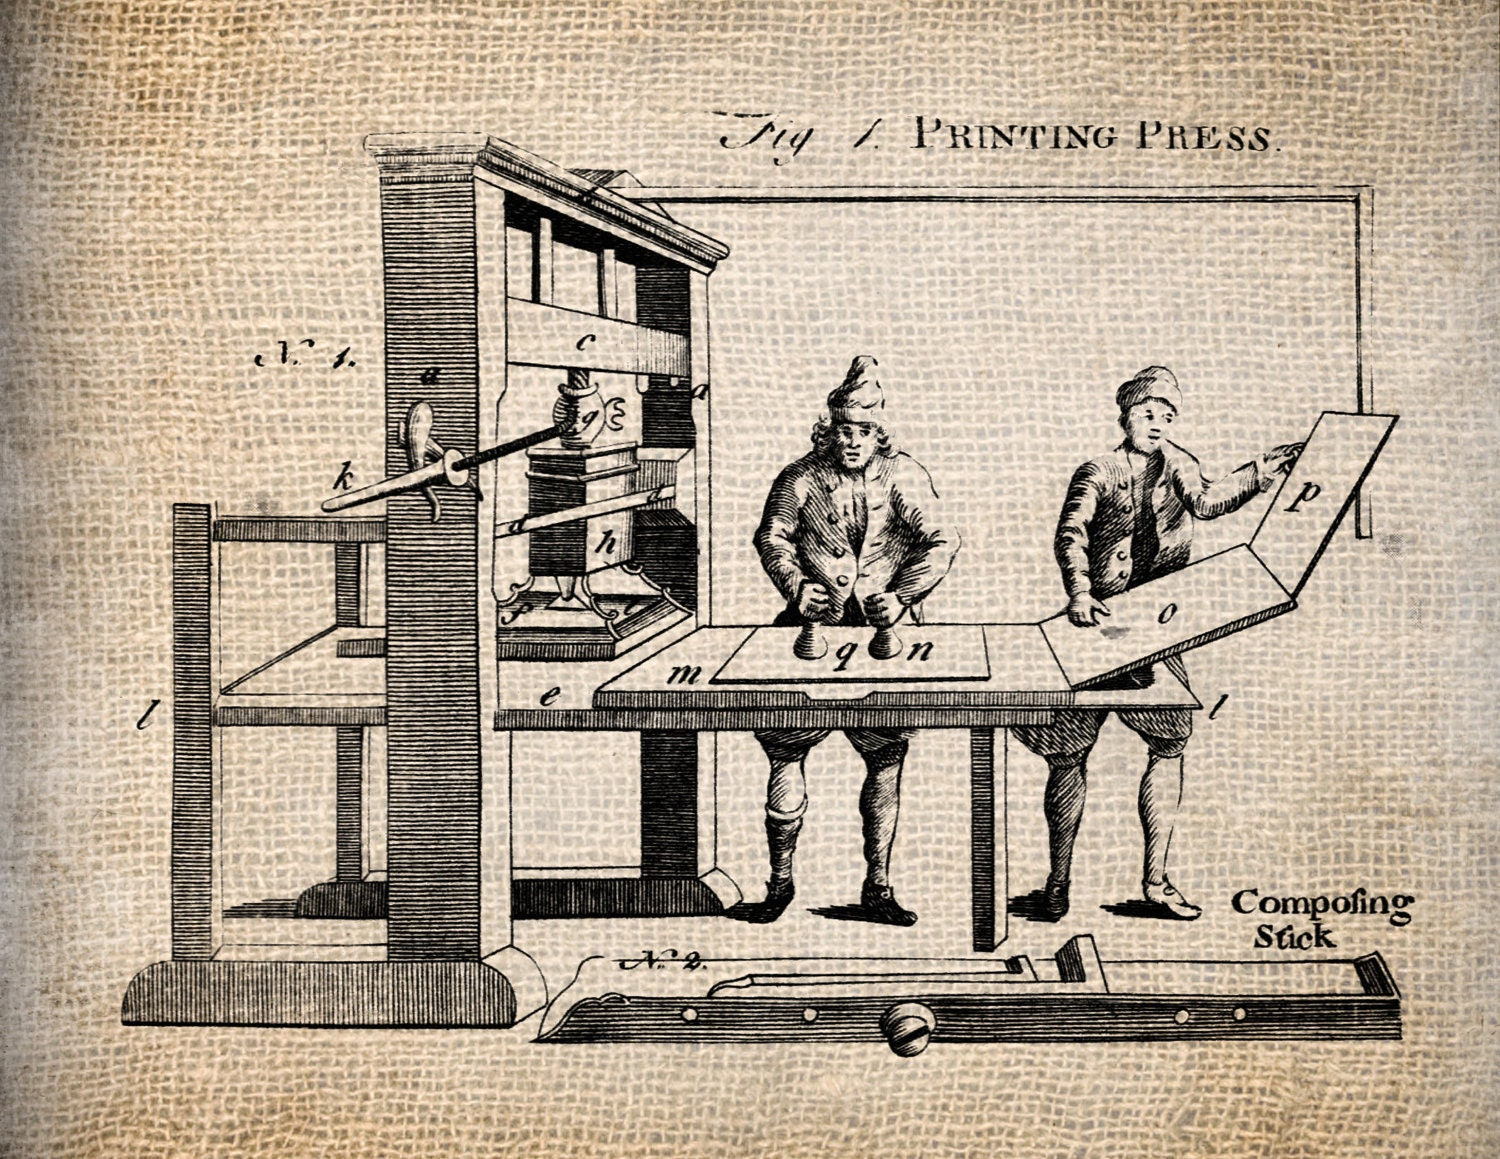 the printing press essay Papers press printing free essay) press(background printing the printing the inventing by 1450s the in world the revolutionized craftsman german this essays, ,  press printing the invented gutenburg 1445 in come, to centuries the in views it's and europe on impact great a such have would invention this that know he did little.